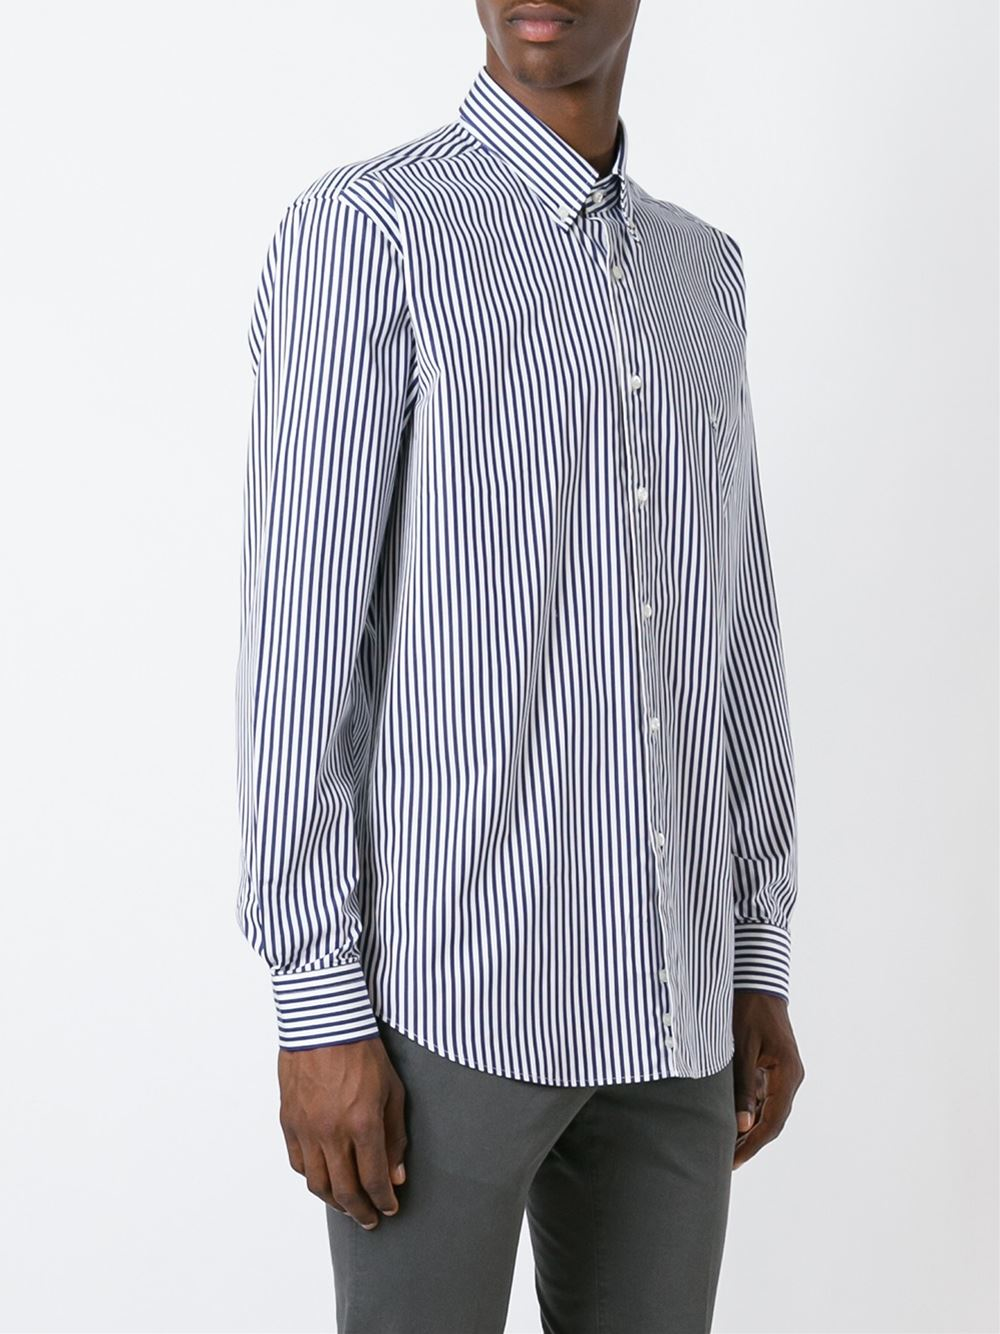 Etro striped button down shirt in blue for men lyst for Striped button down shirts for men